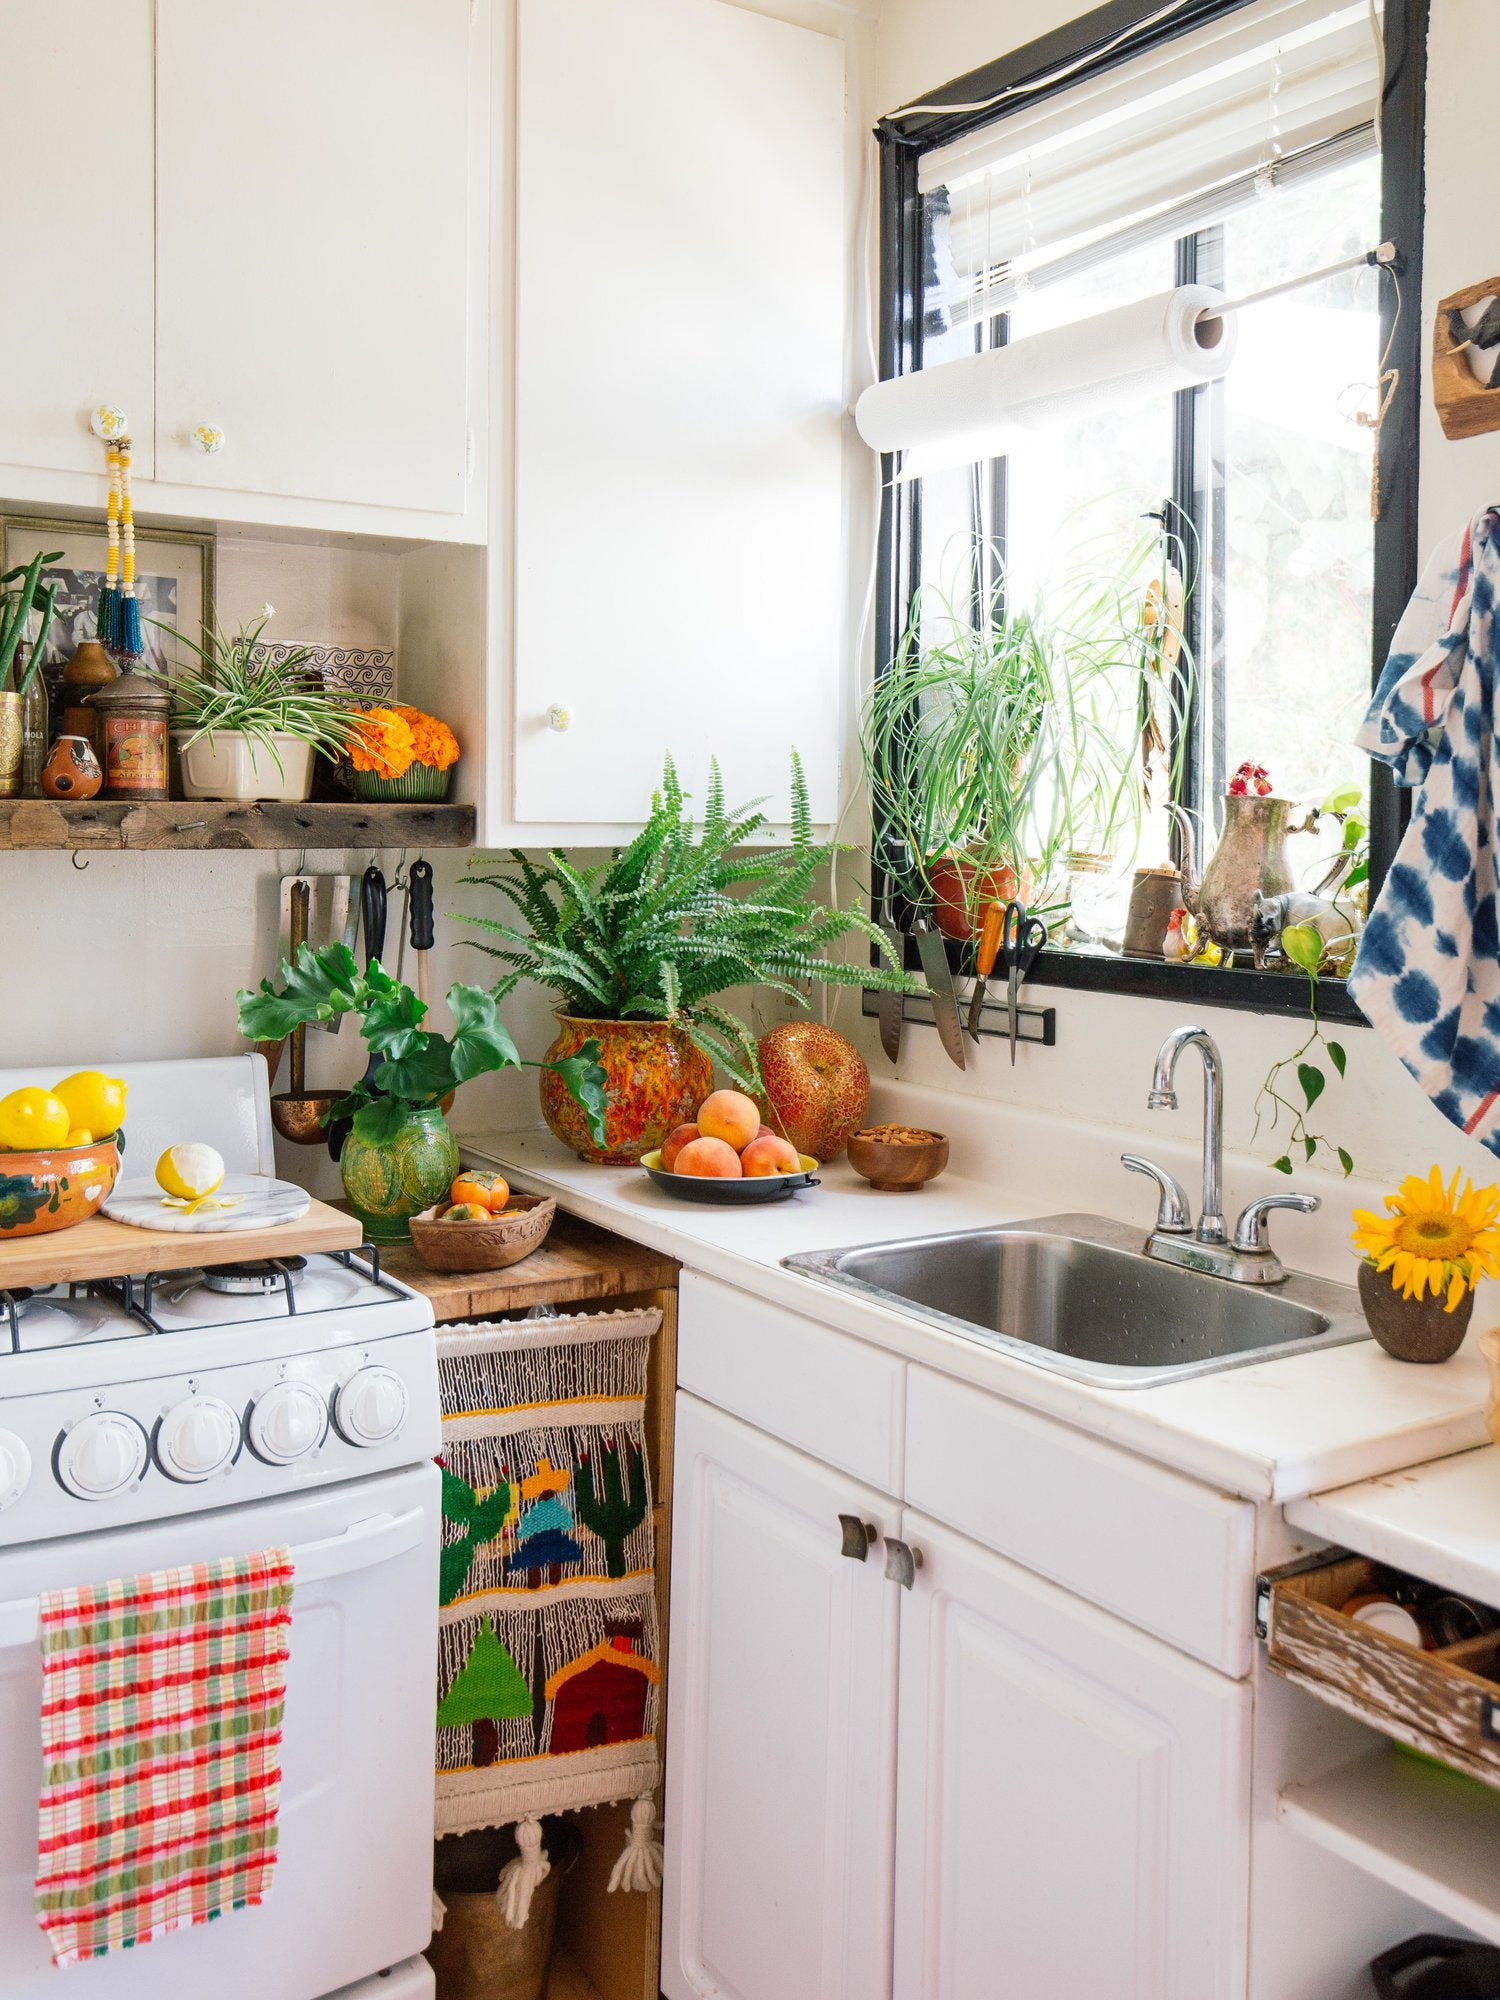 8 Tiny House Kitchen Ideas To Help You Make The Most Of Your Small Space